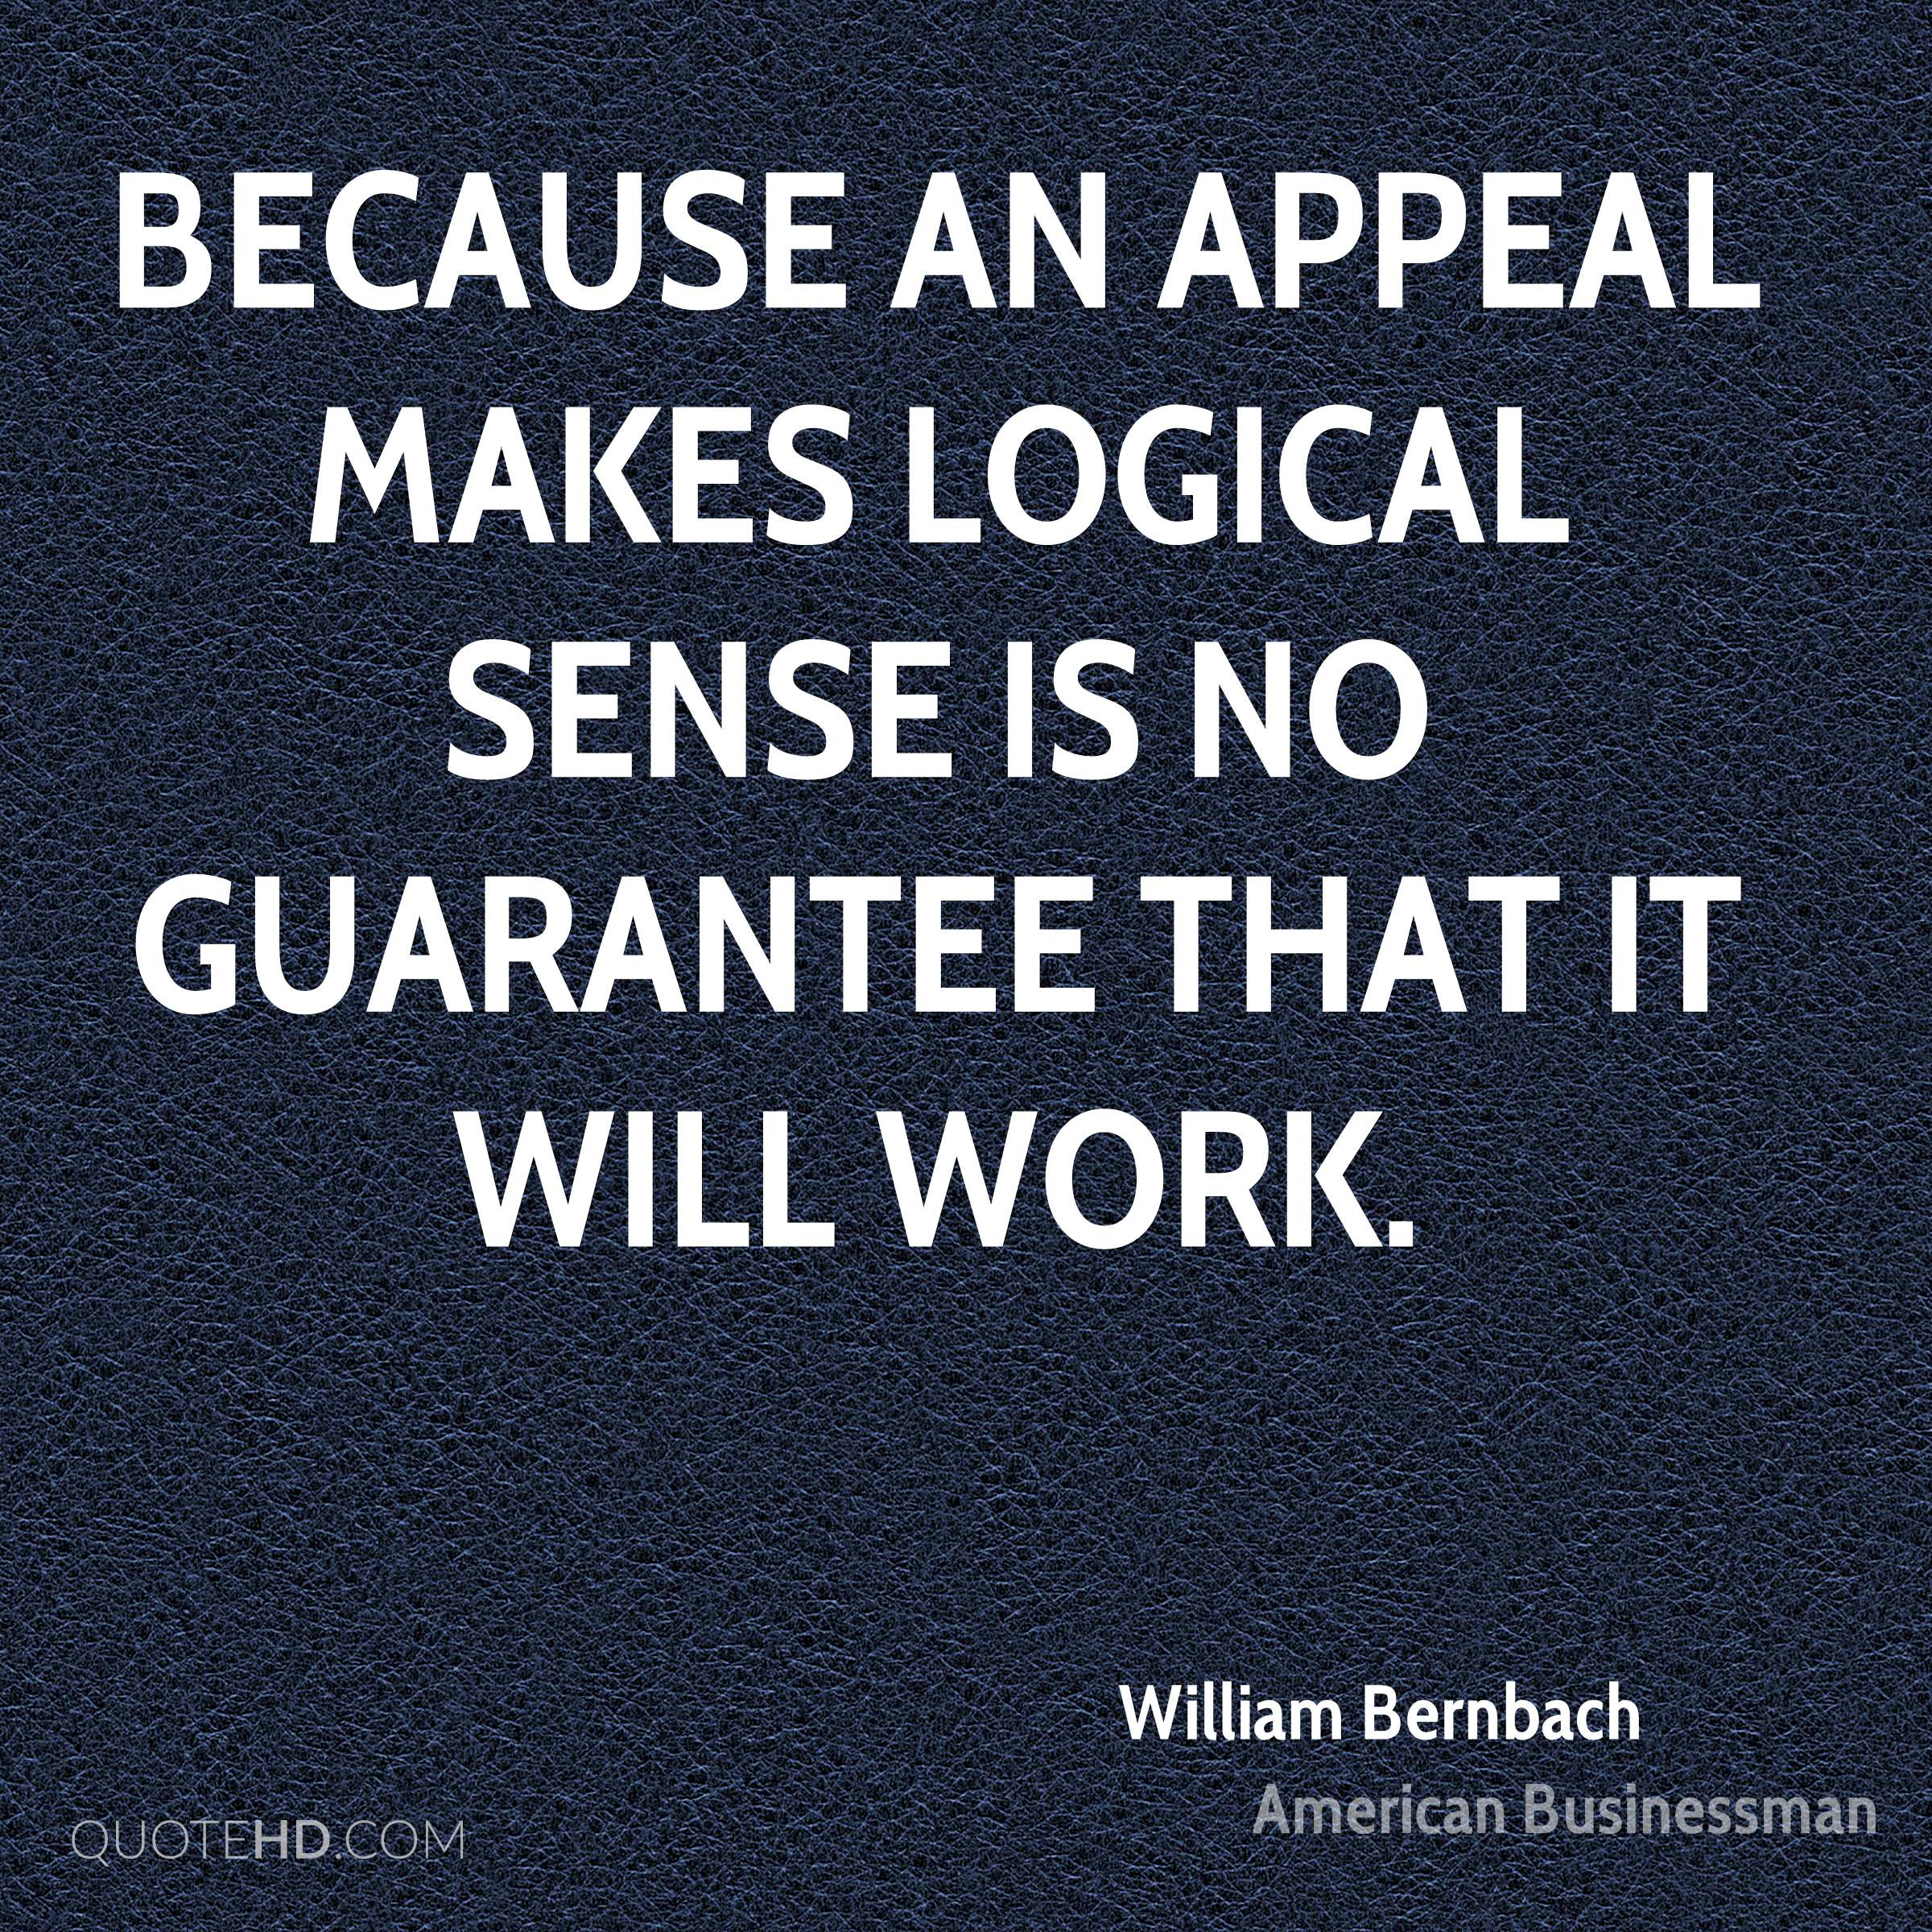 Because an appeal makes logical sense is no guarantee that it will work.